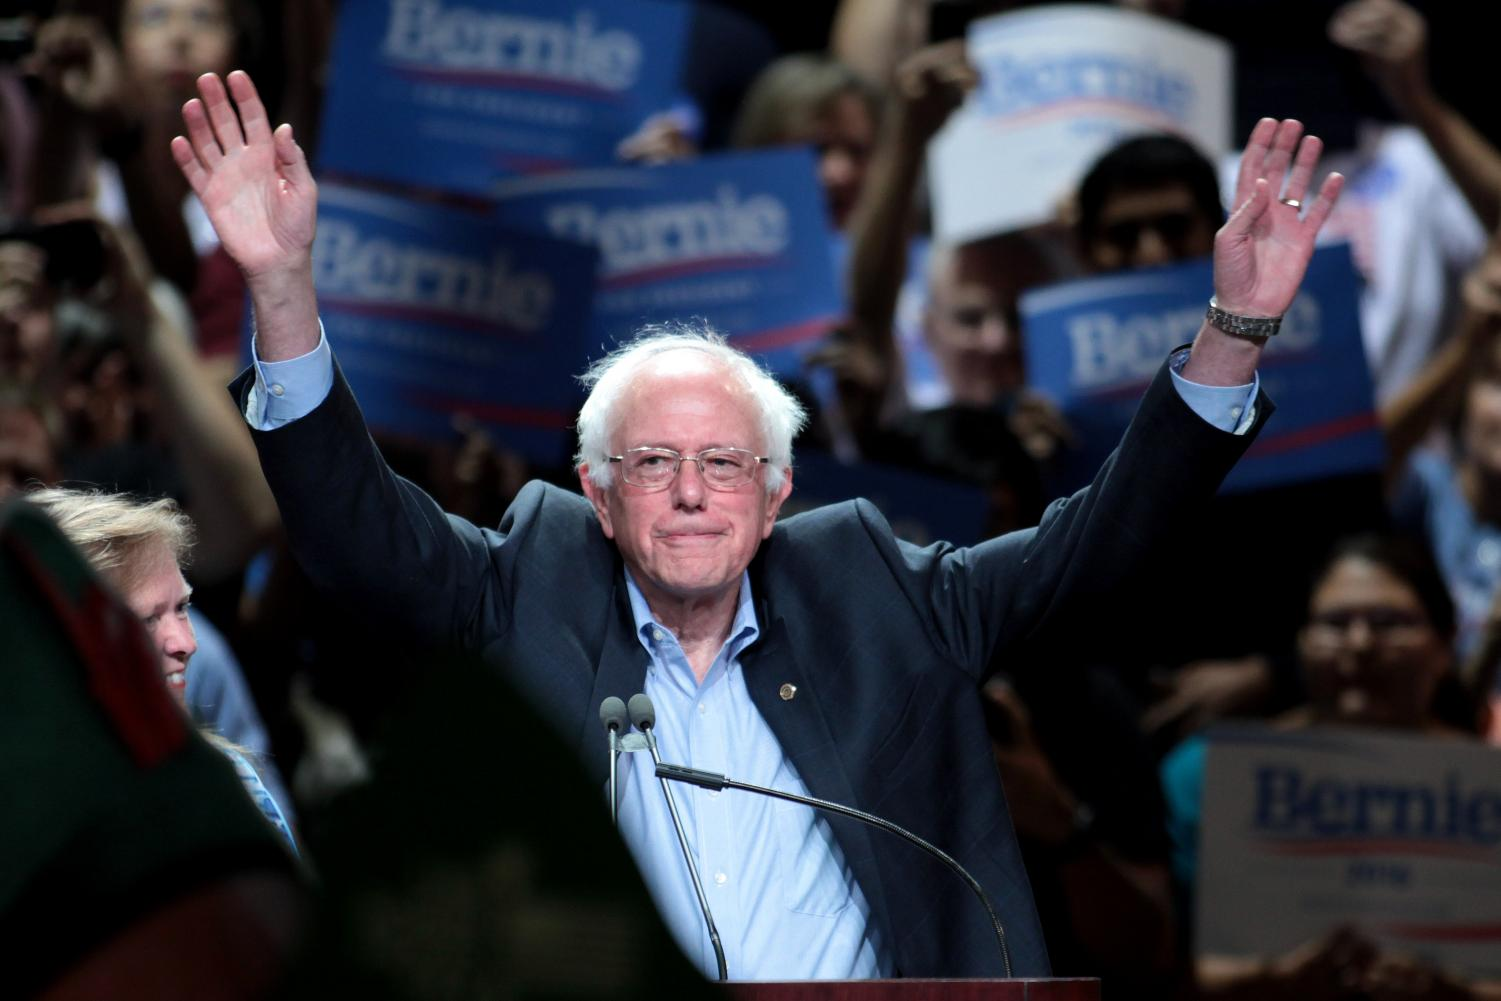 Senator Bernie Sanders was unable to come away with a victory in Iowa in 2016, narrowly losing to eventual nominee Hillary Clinton, and came up just short in 2020 as well. While results are still technically up in the air, the Democratic Party has gone ahead and awarded Pete Buttigieg the most delegates from the caucus.